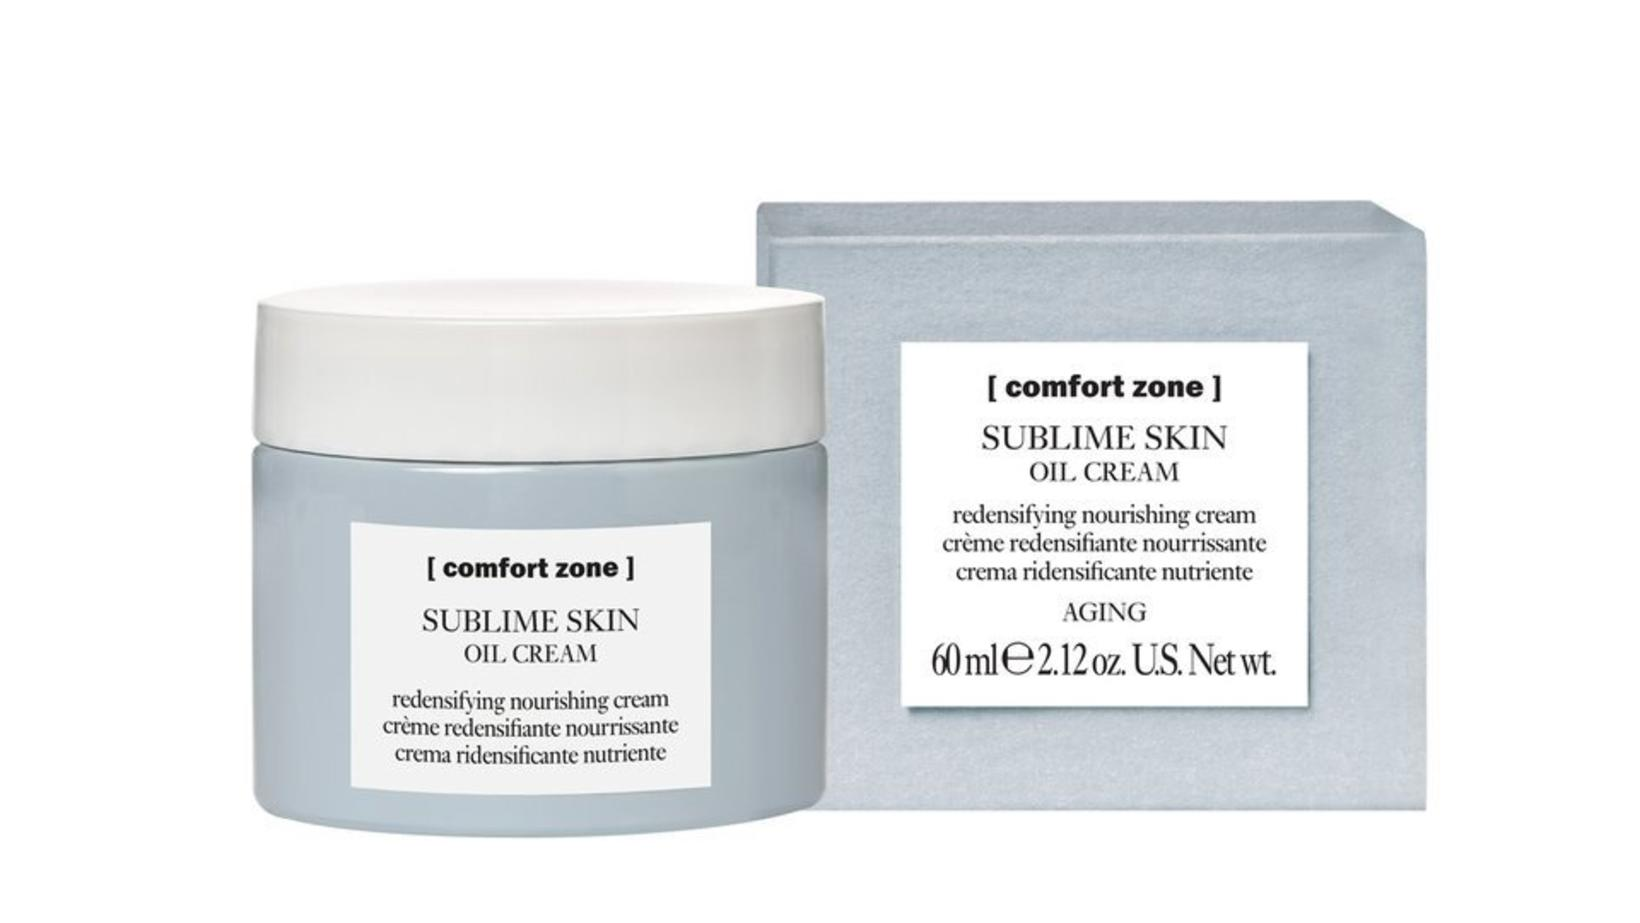 Comfort Zone Sublime Skin Oil Cream.